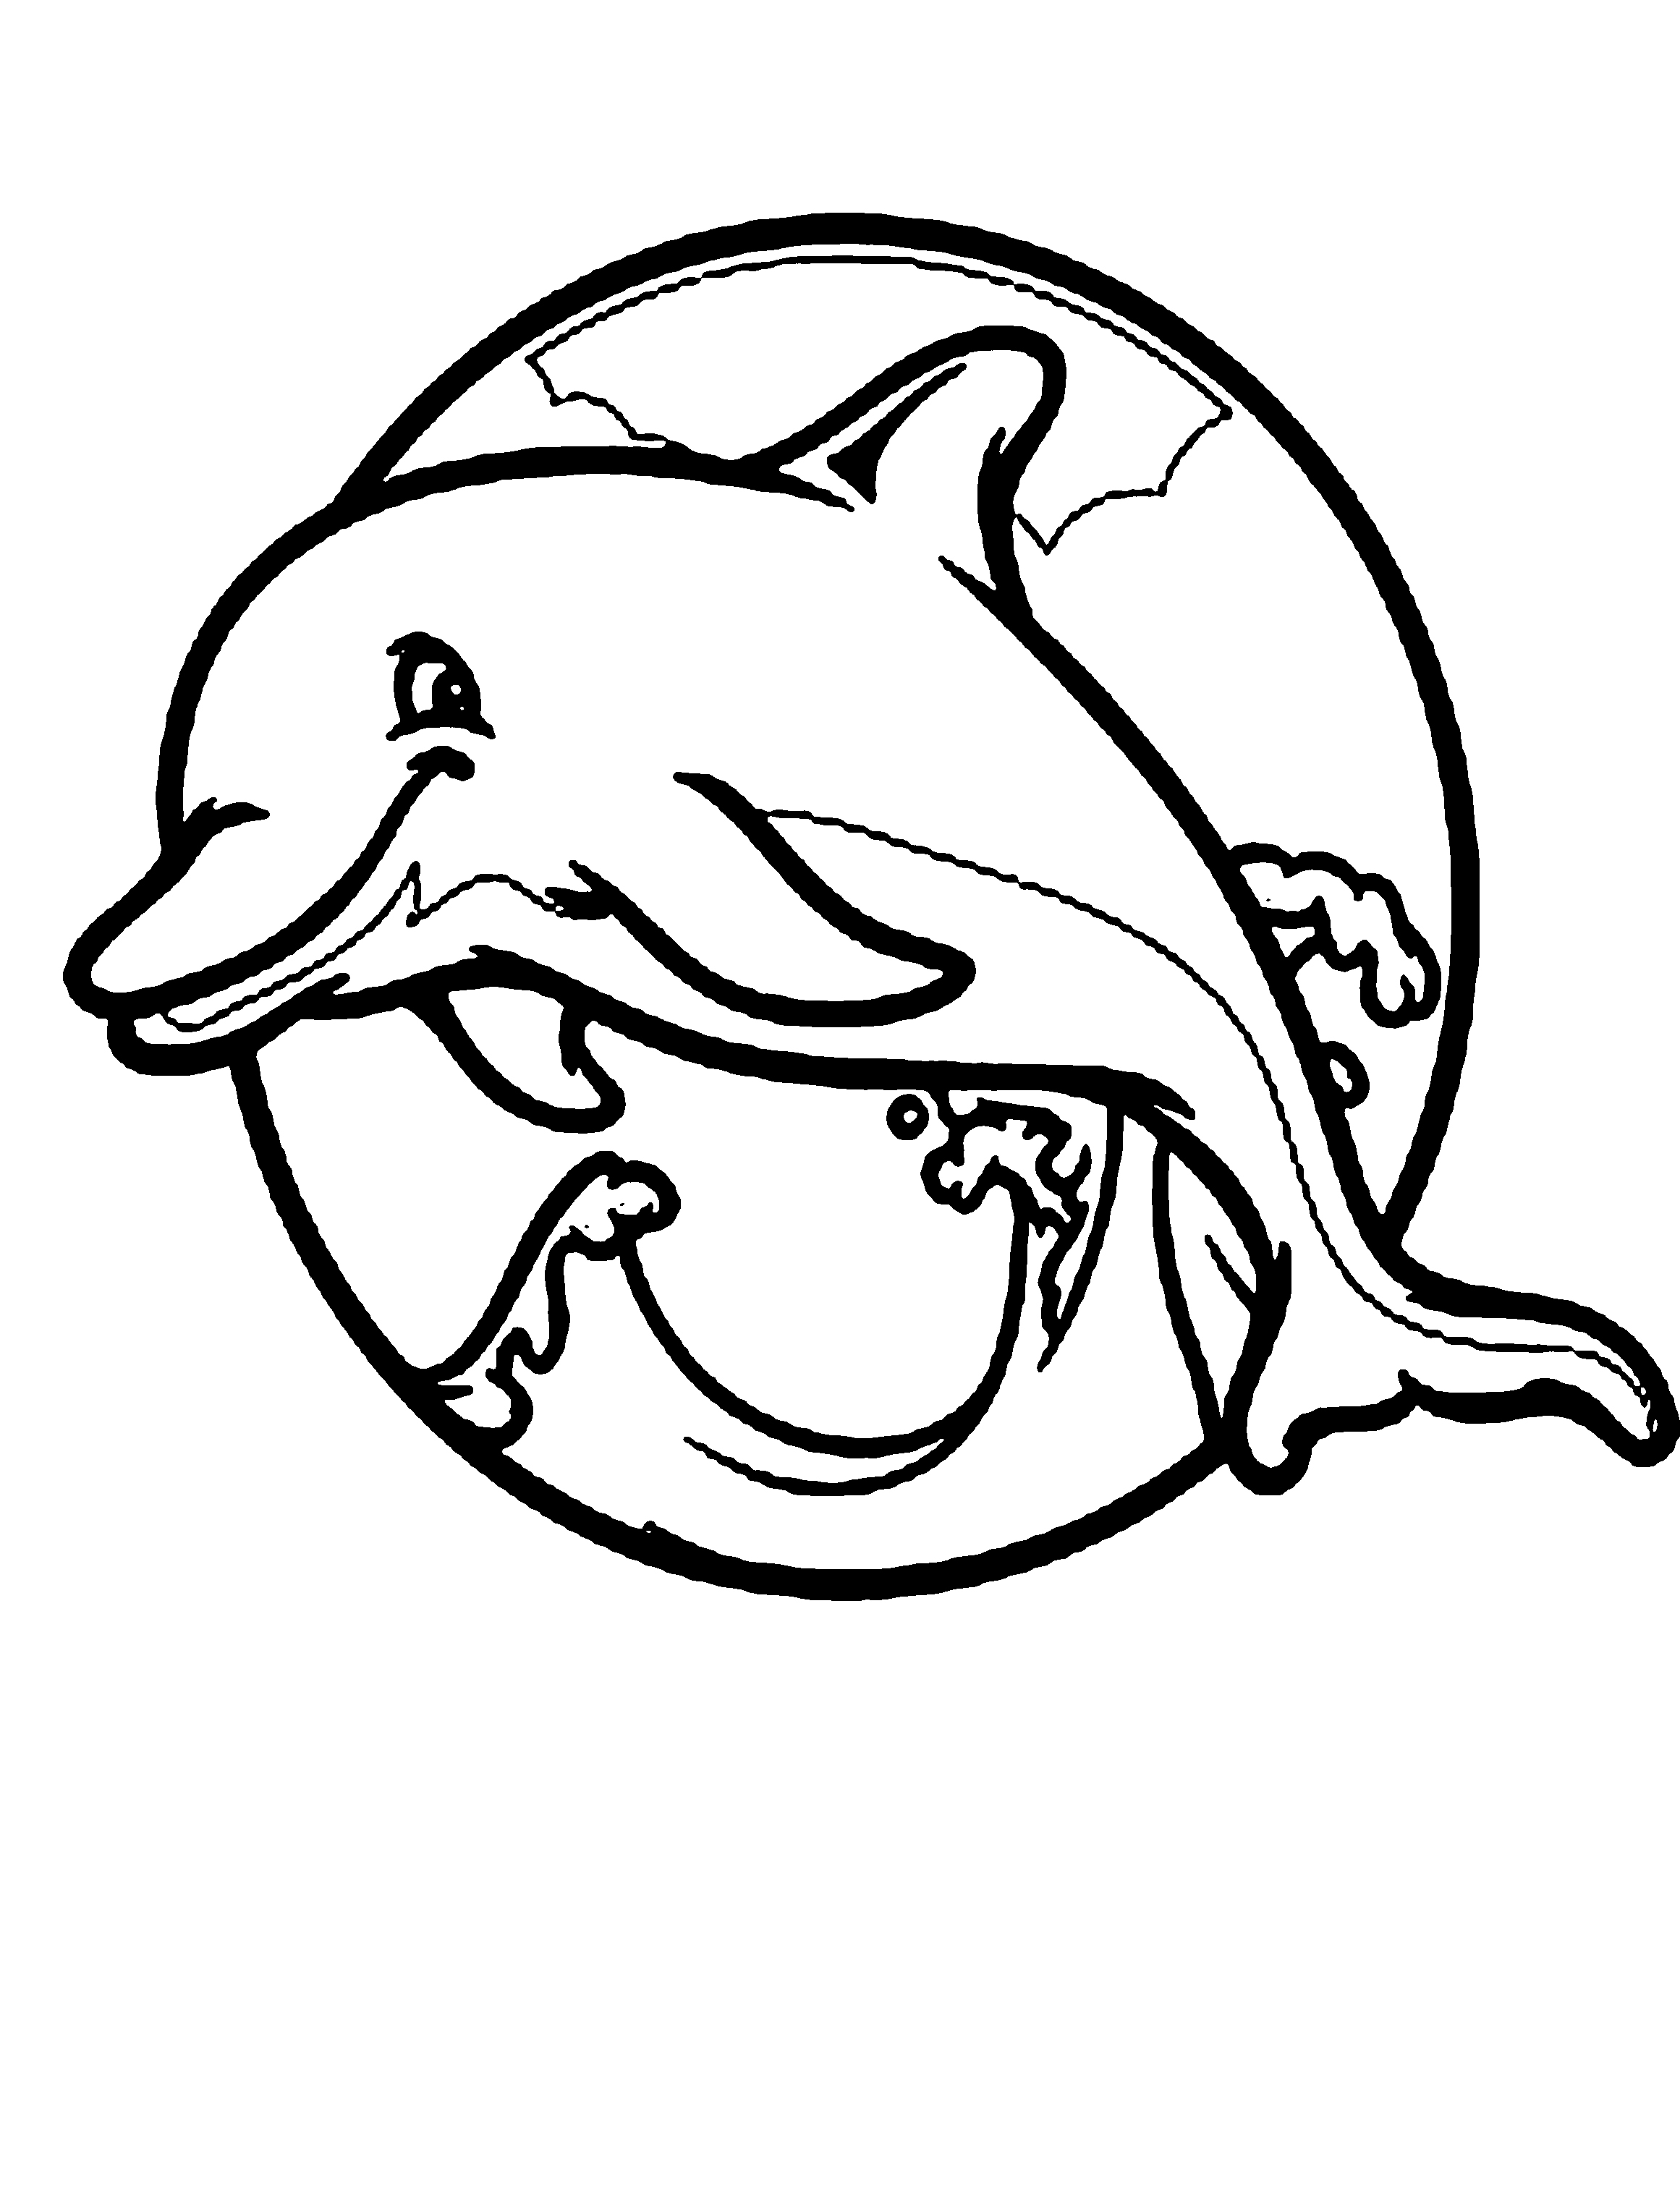 Free coloring pages dolphins - Clipart Info